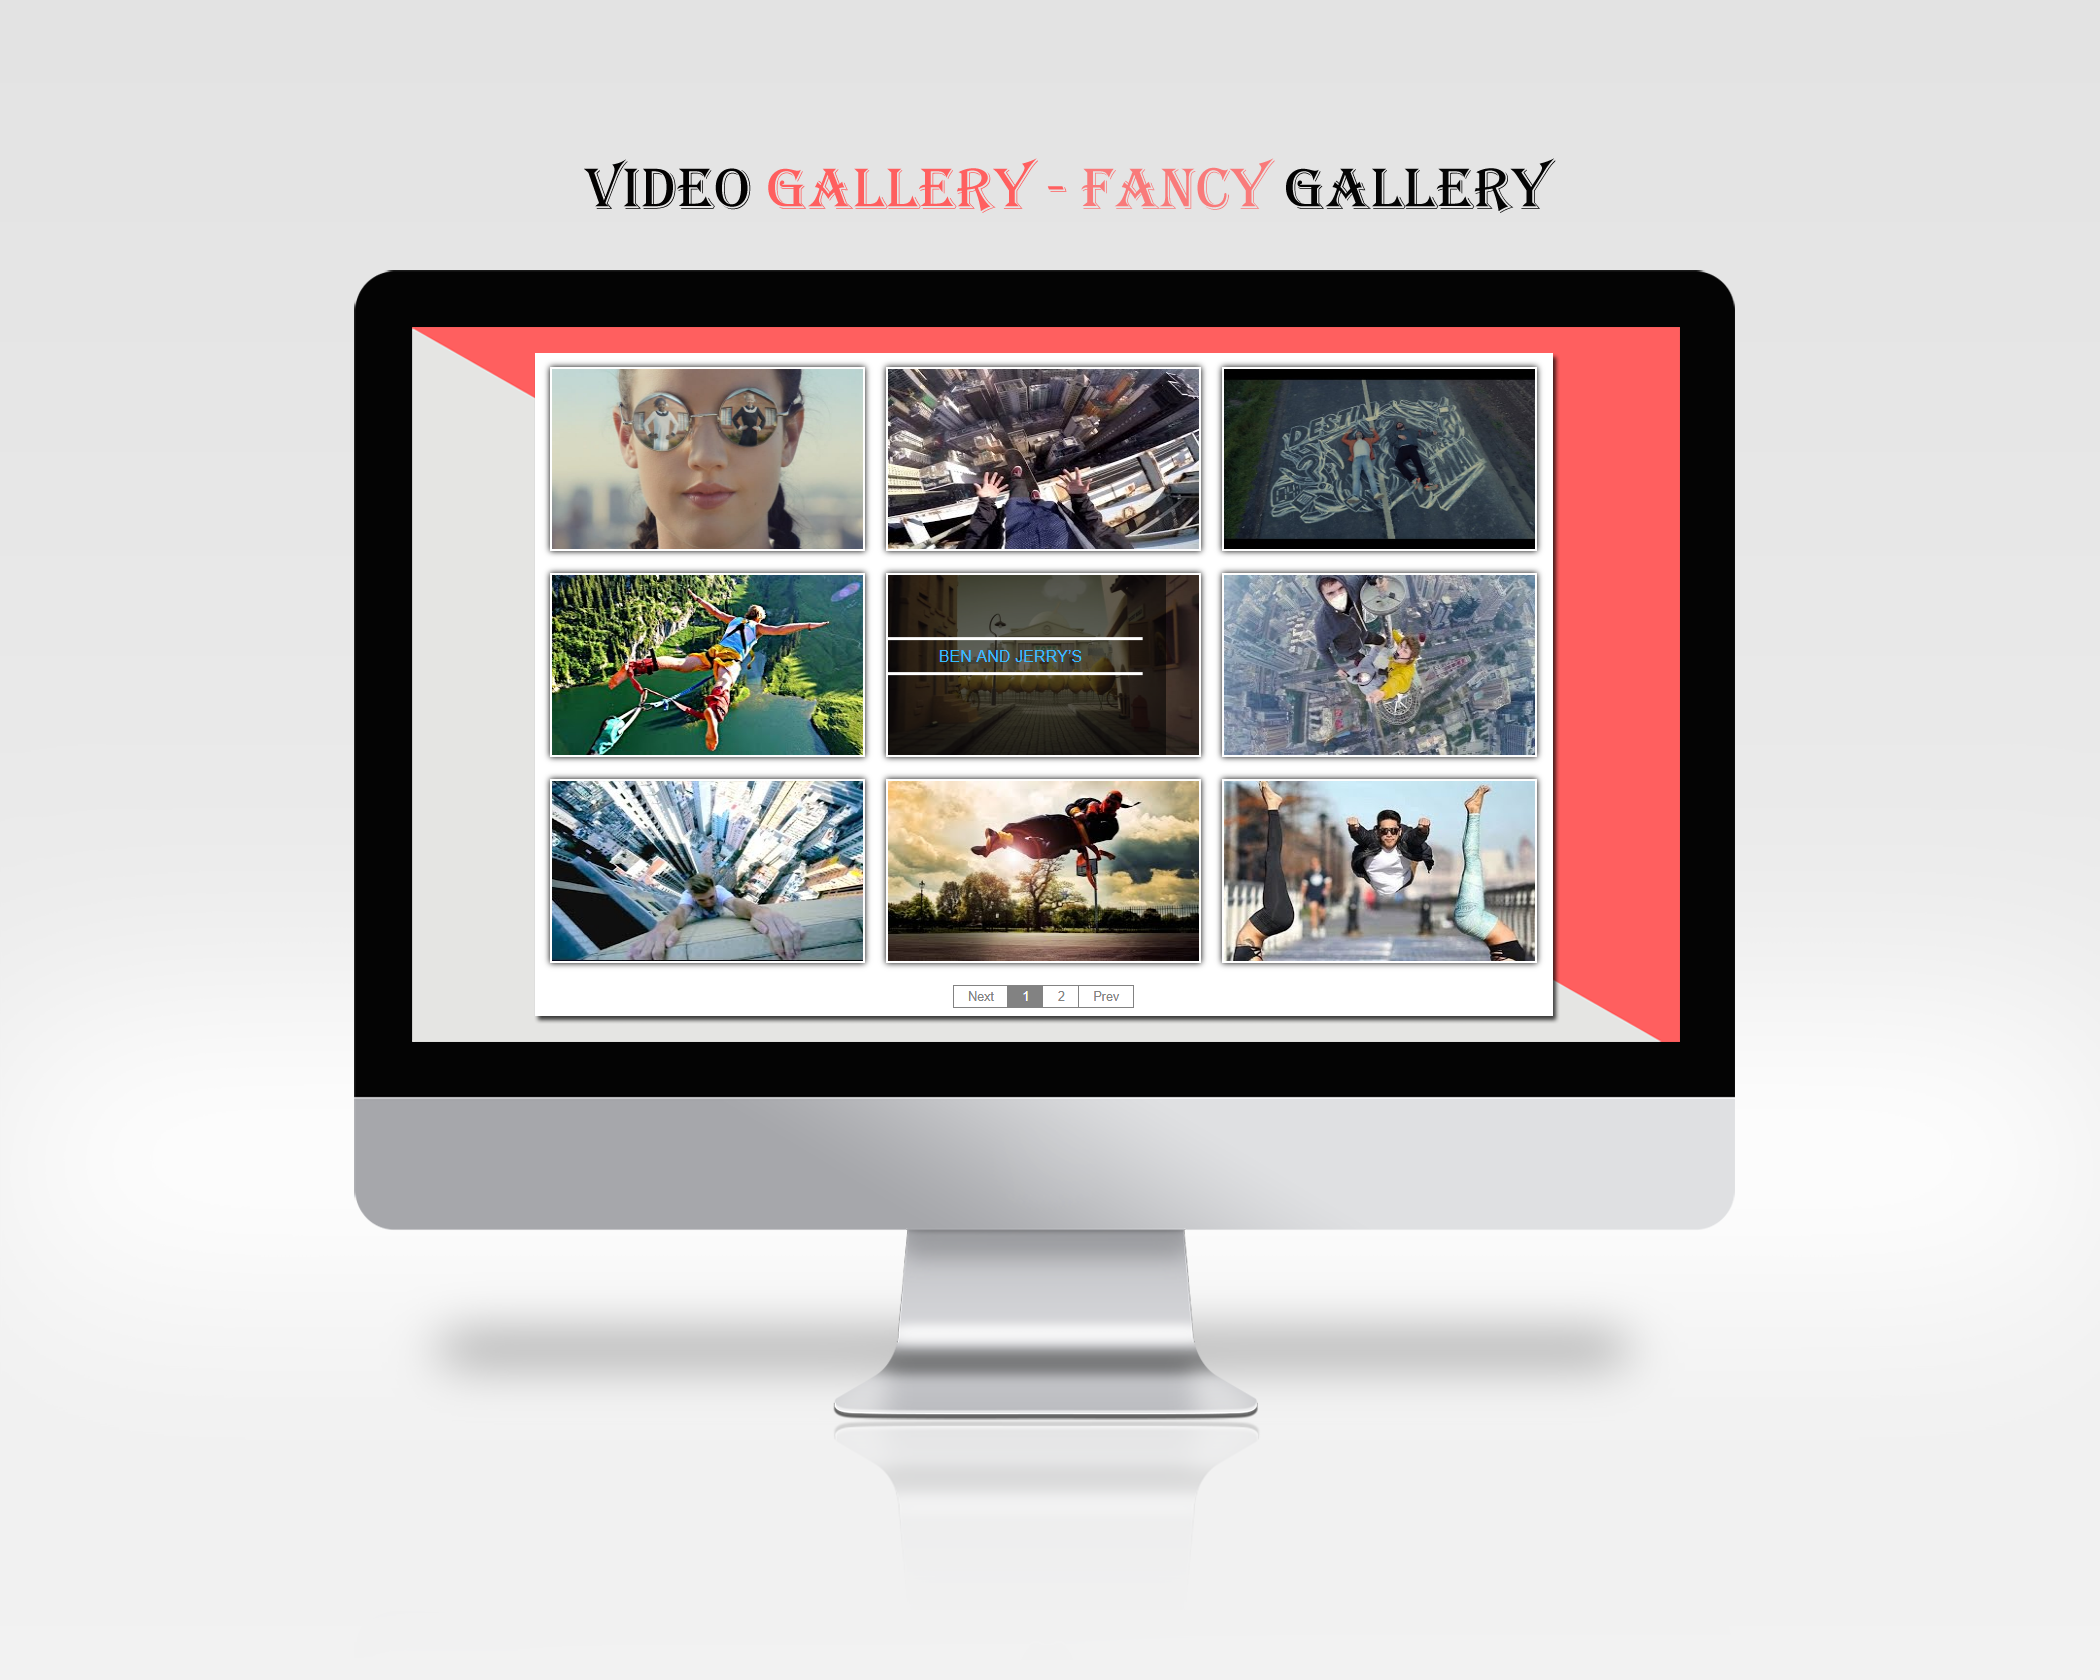 An example of plugin in action - Fancy Gallery